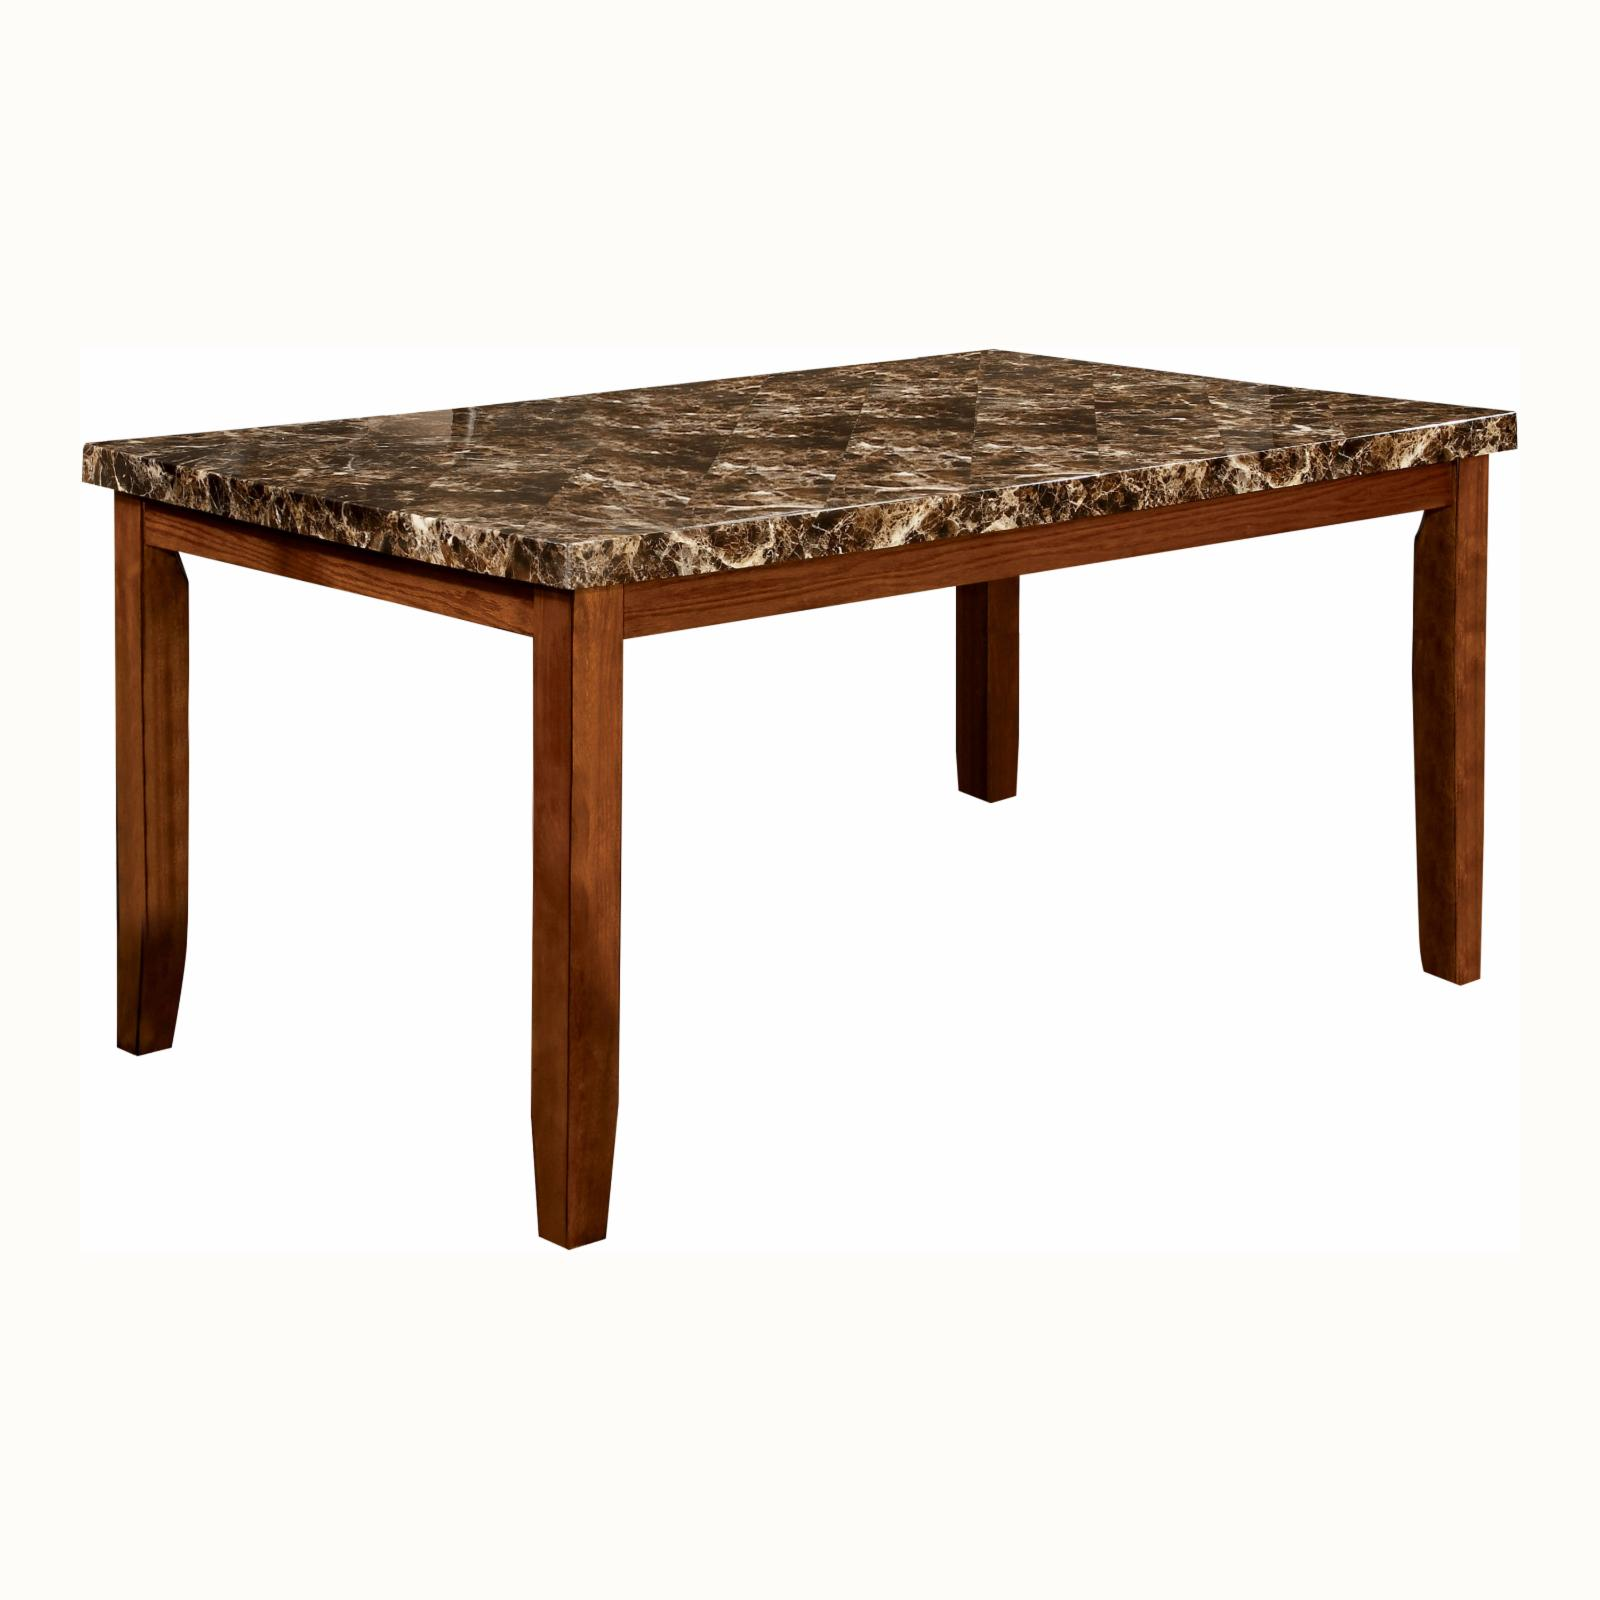 Furniture of America Wilmont Dining Table - IDF-3328T